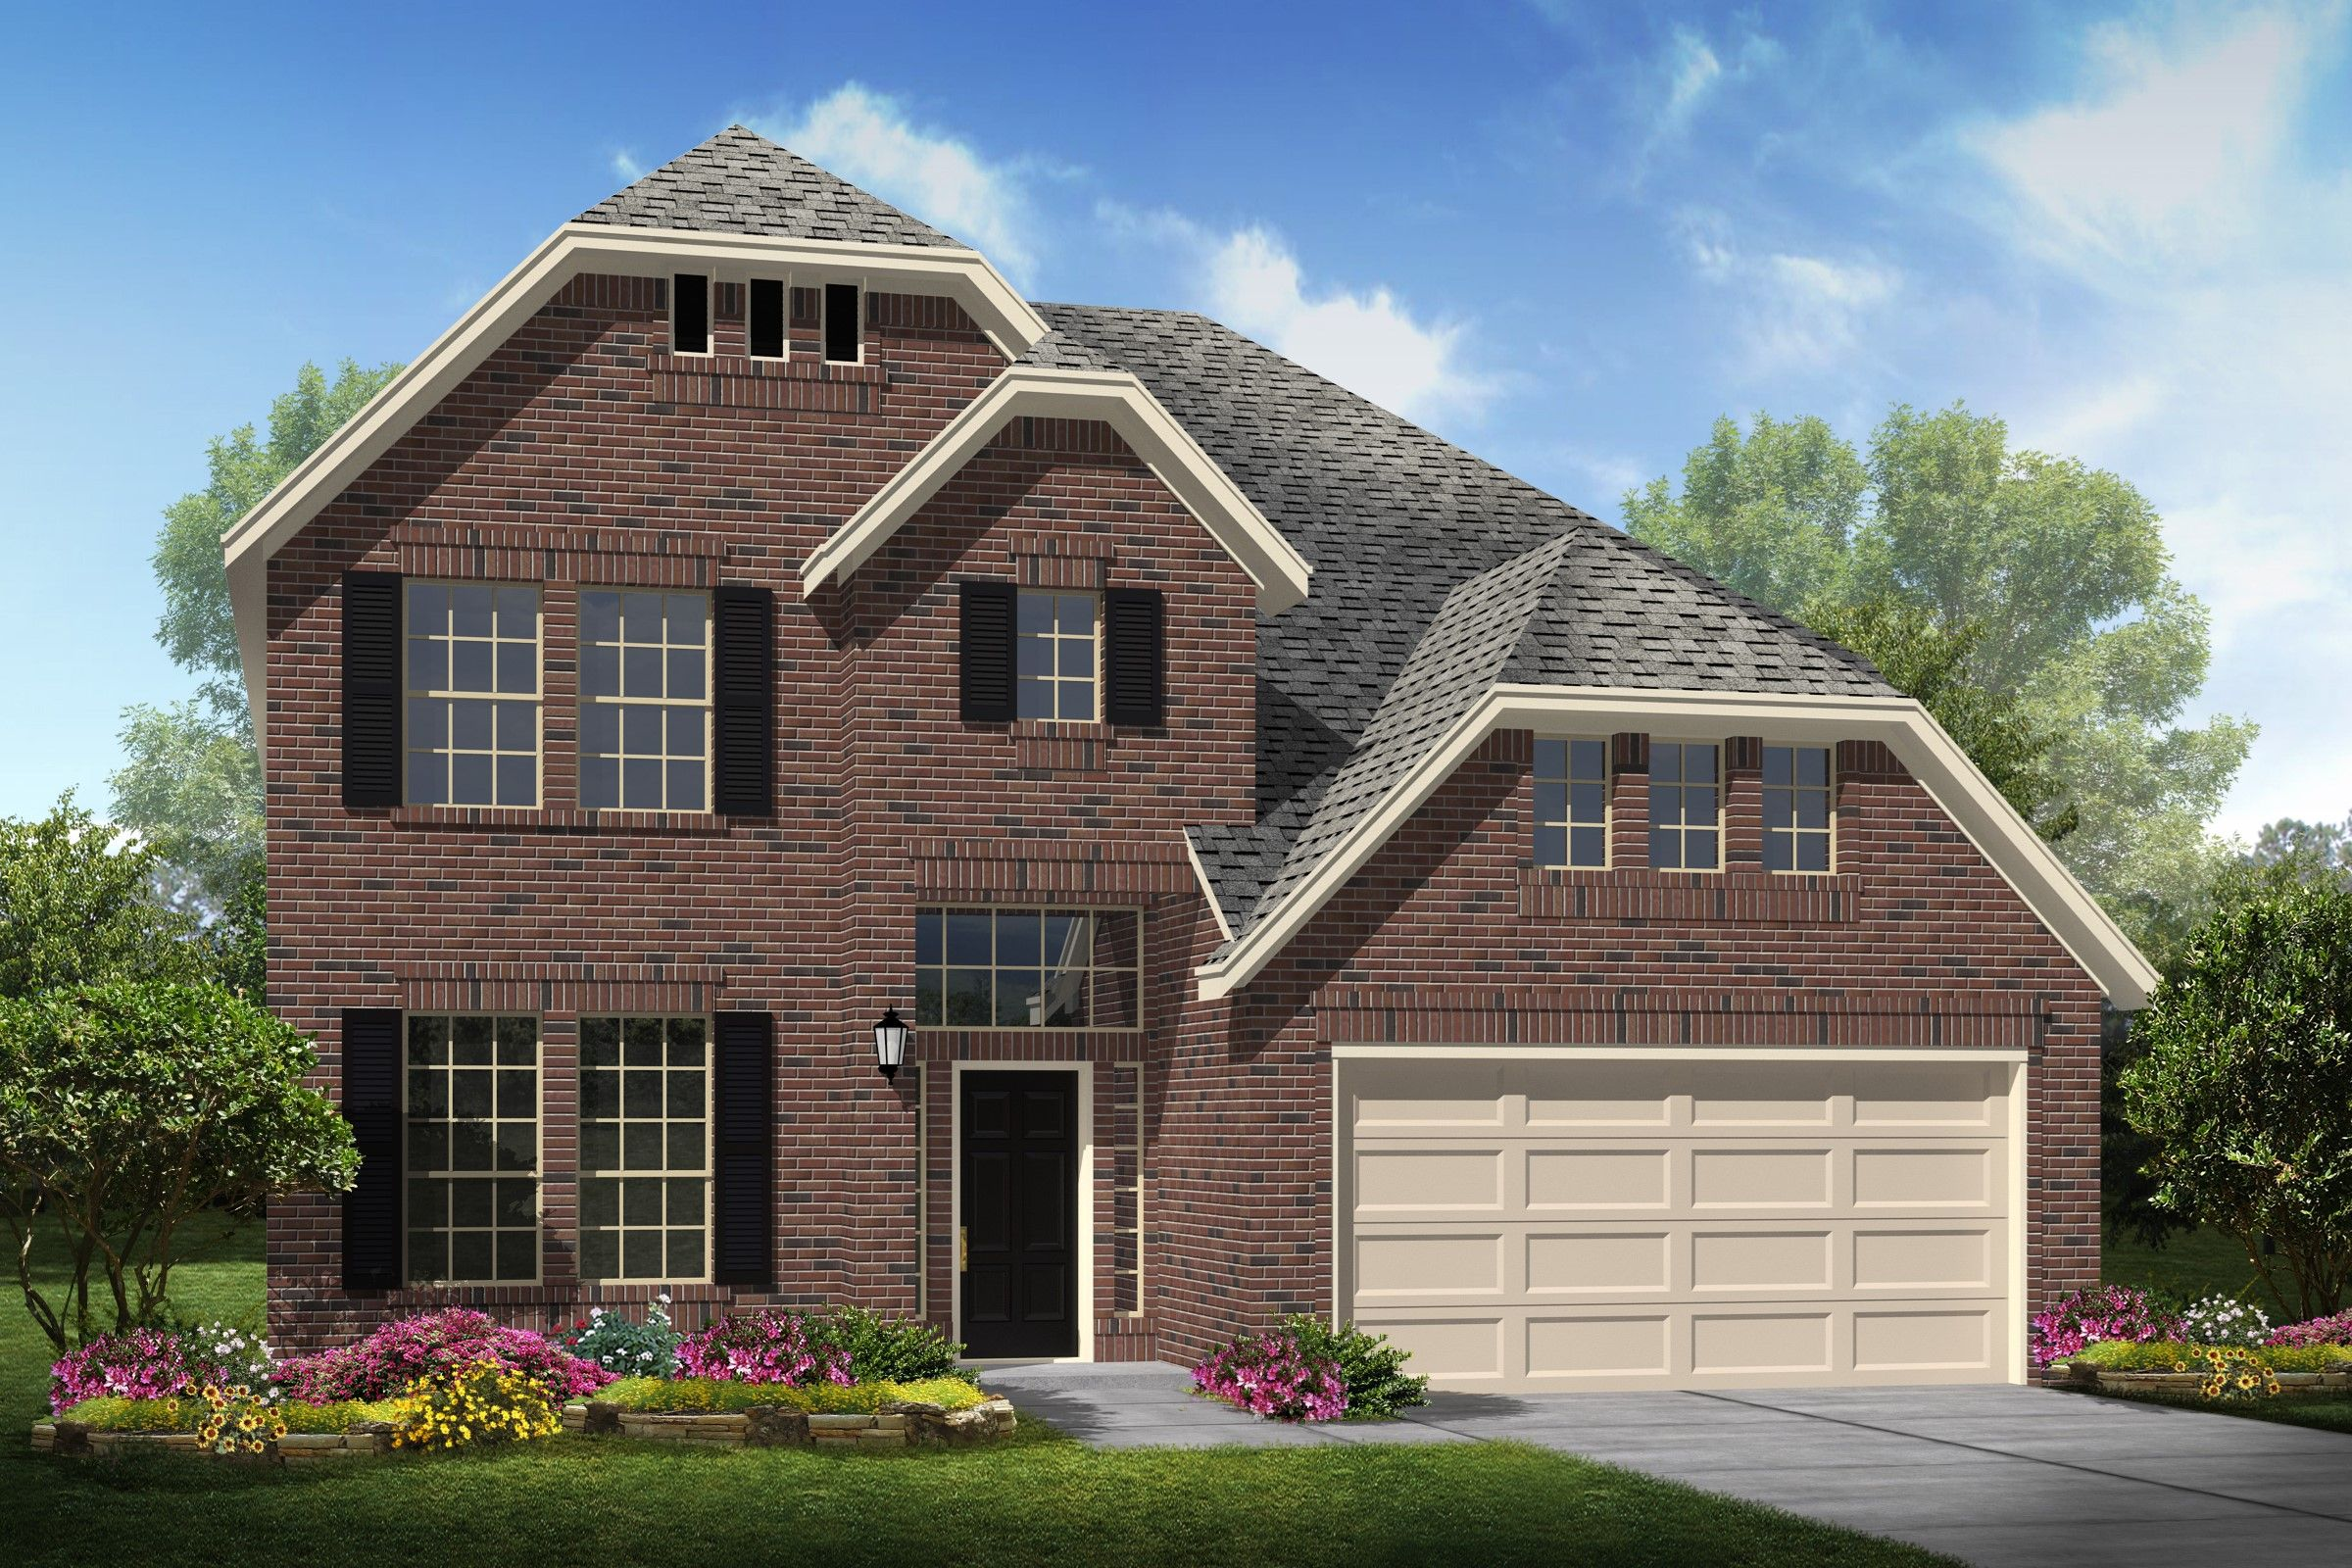 New Inventory Homes for Sale and New Builds near Baytown Texas